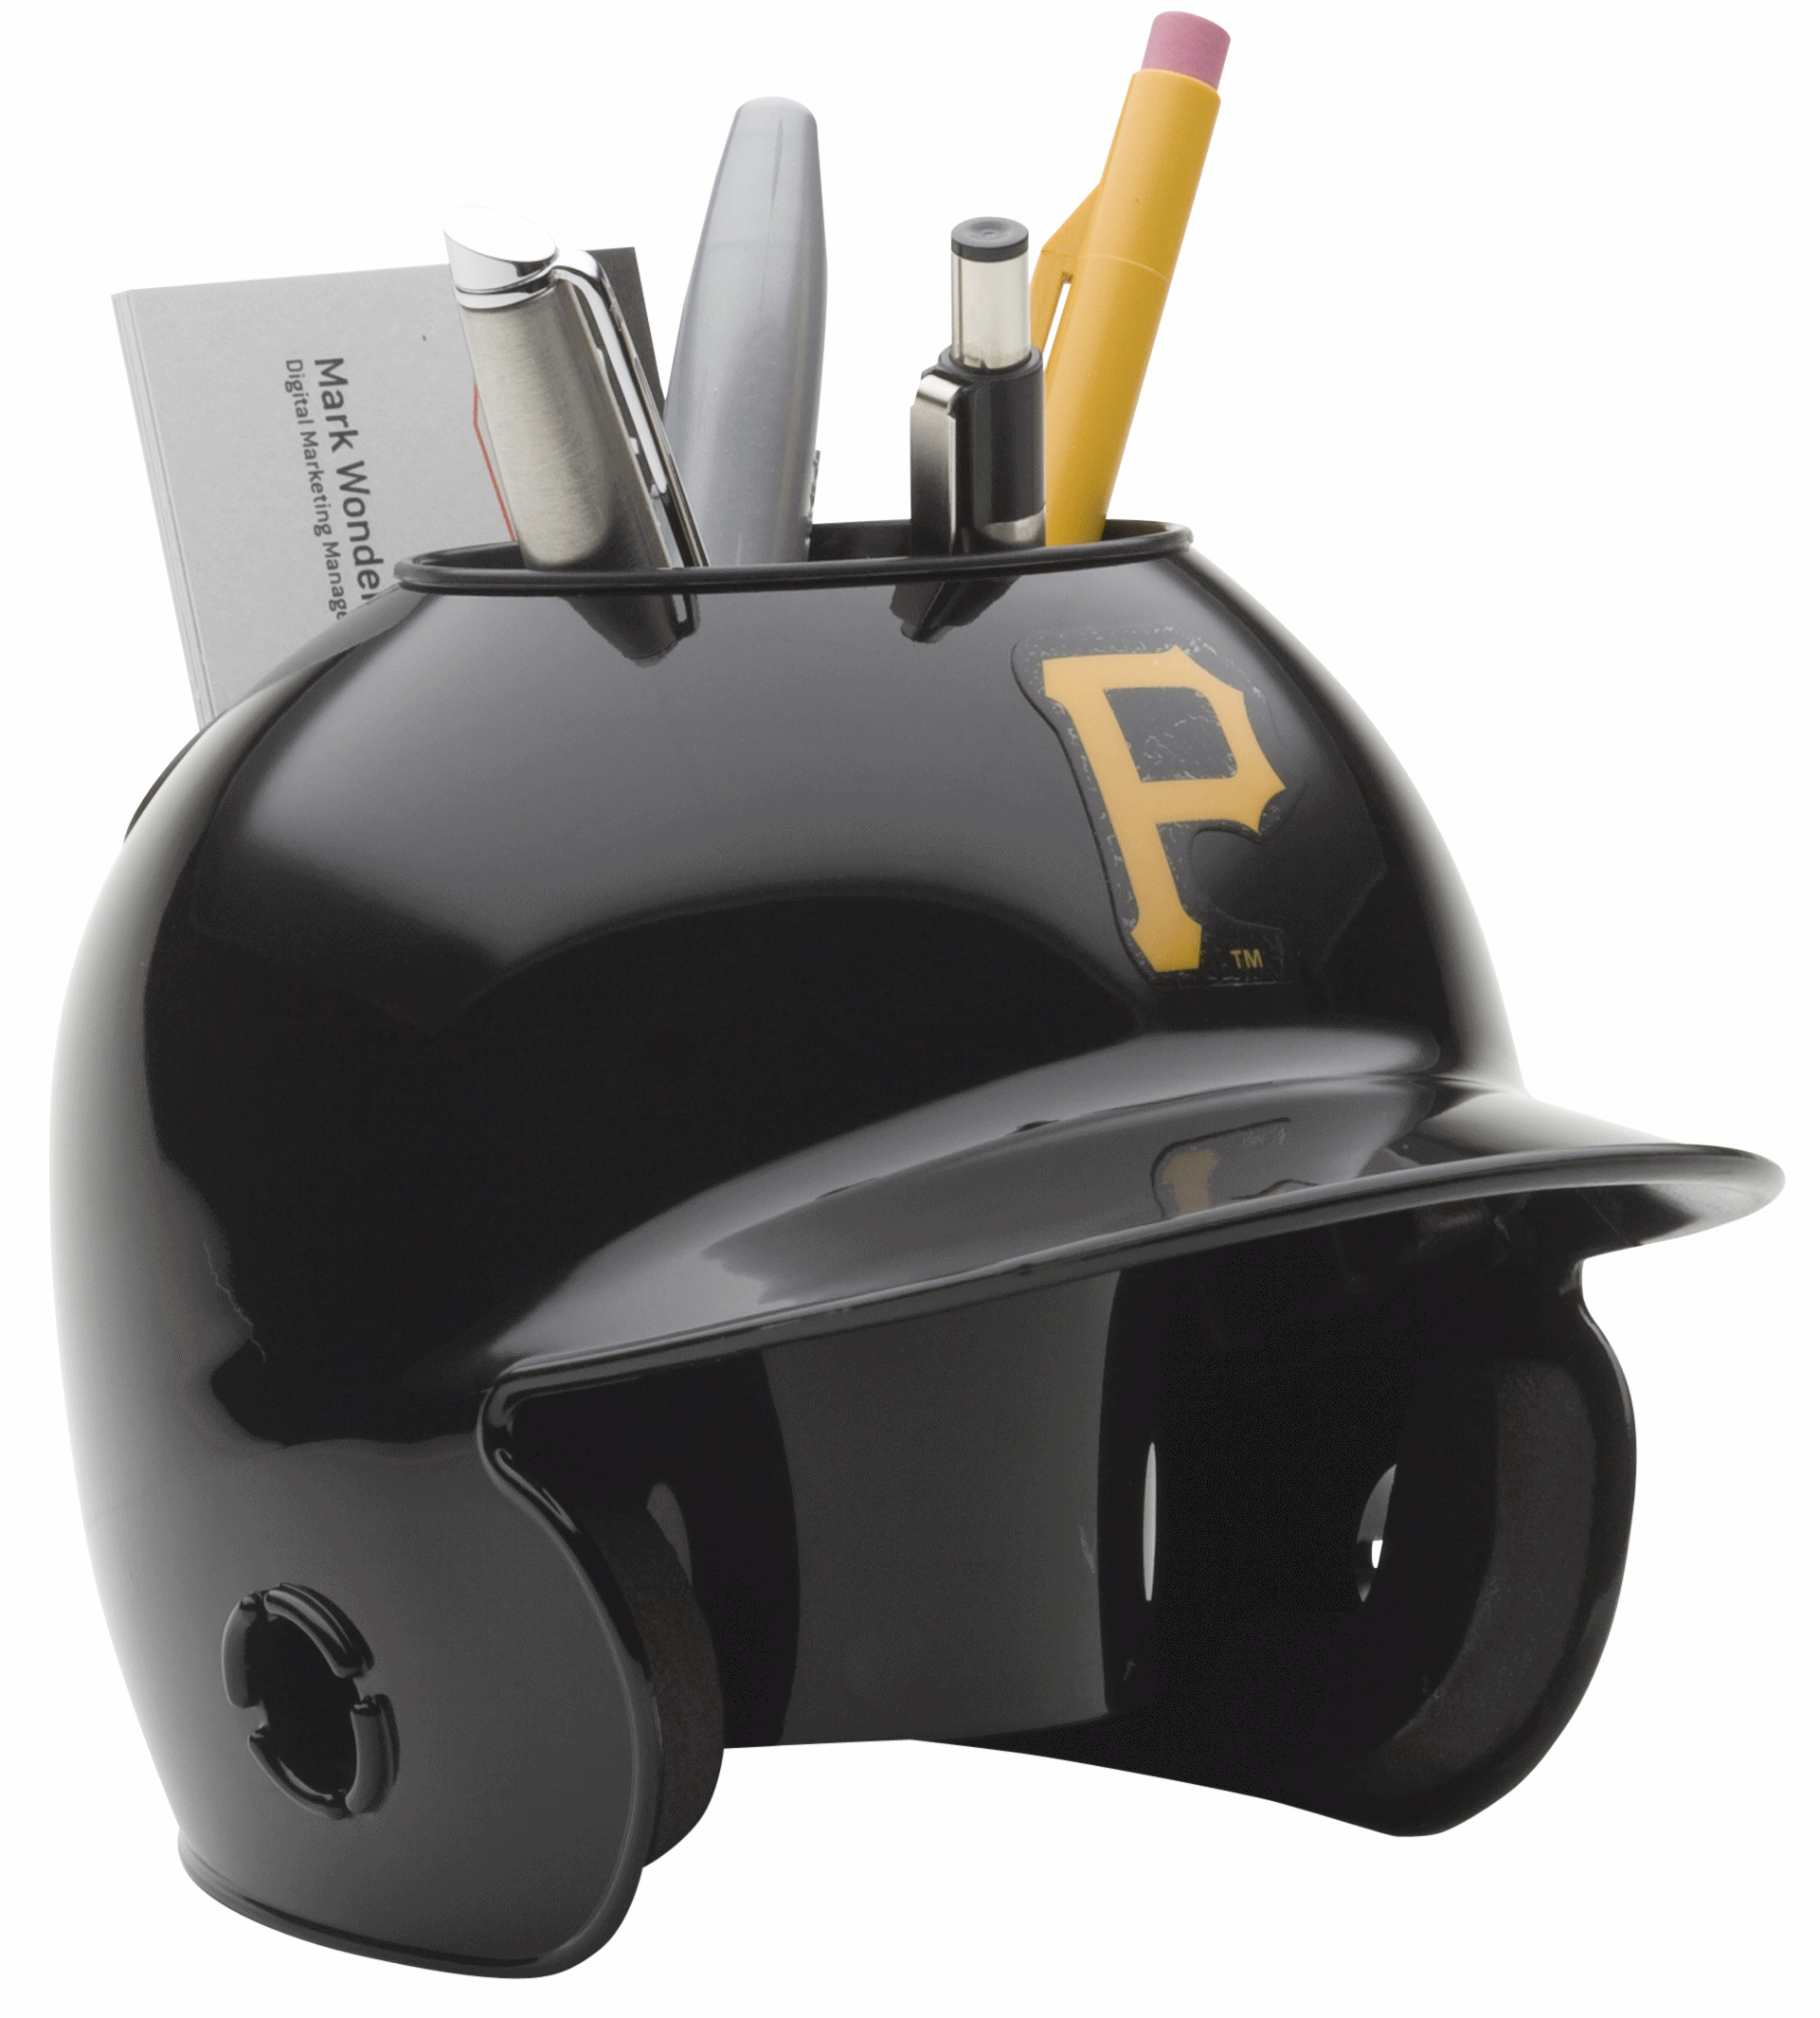 Pittsburgh Pirates Miniature Batters Helmet Desk Caddy